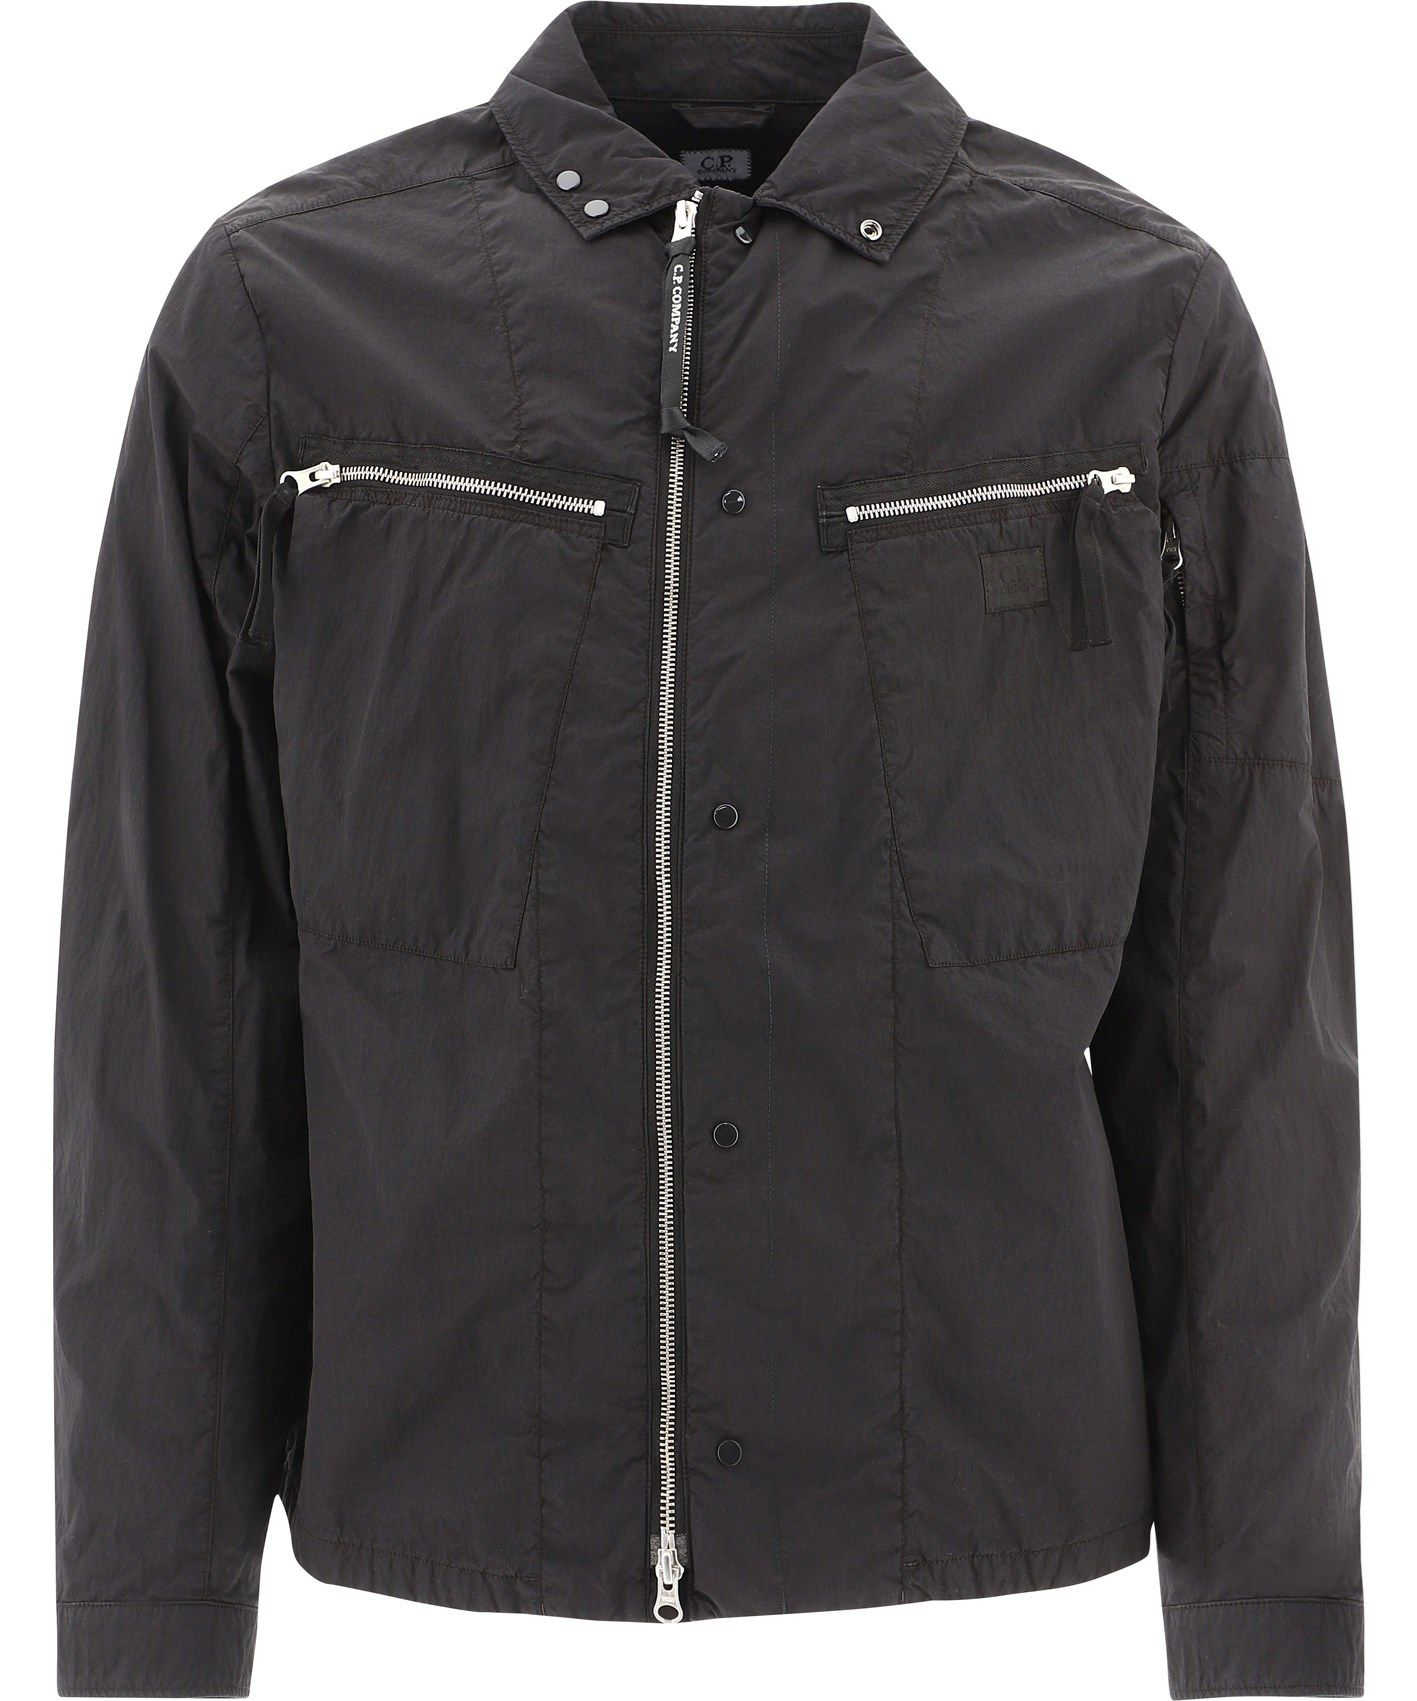 C.p. Company Jackets CP COMPANY MEN'S 09CMOS279A005884G999 BLACK OTHER MATERIALS OUTERWEAR JACKET